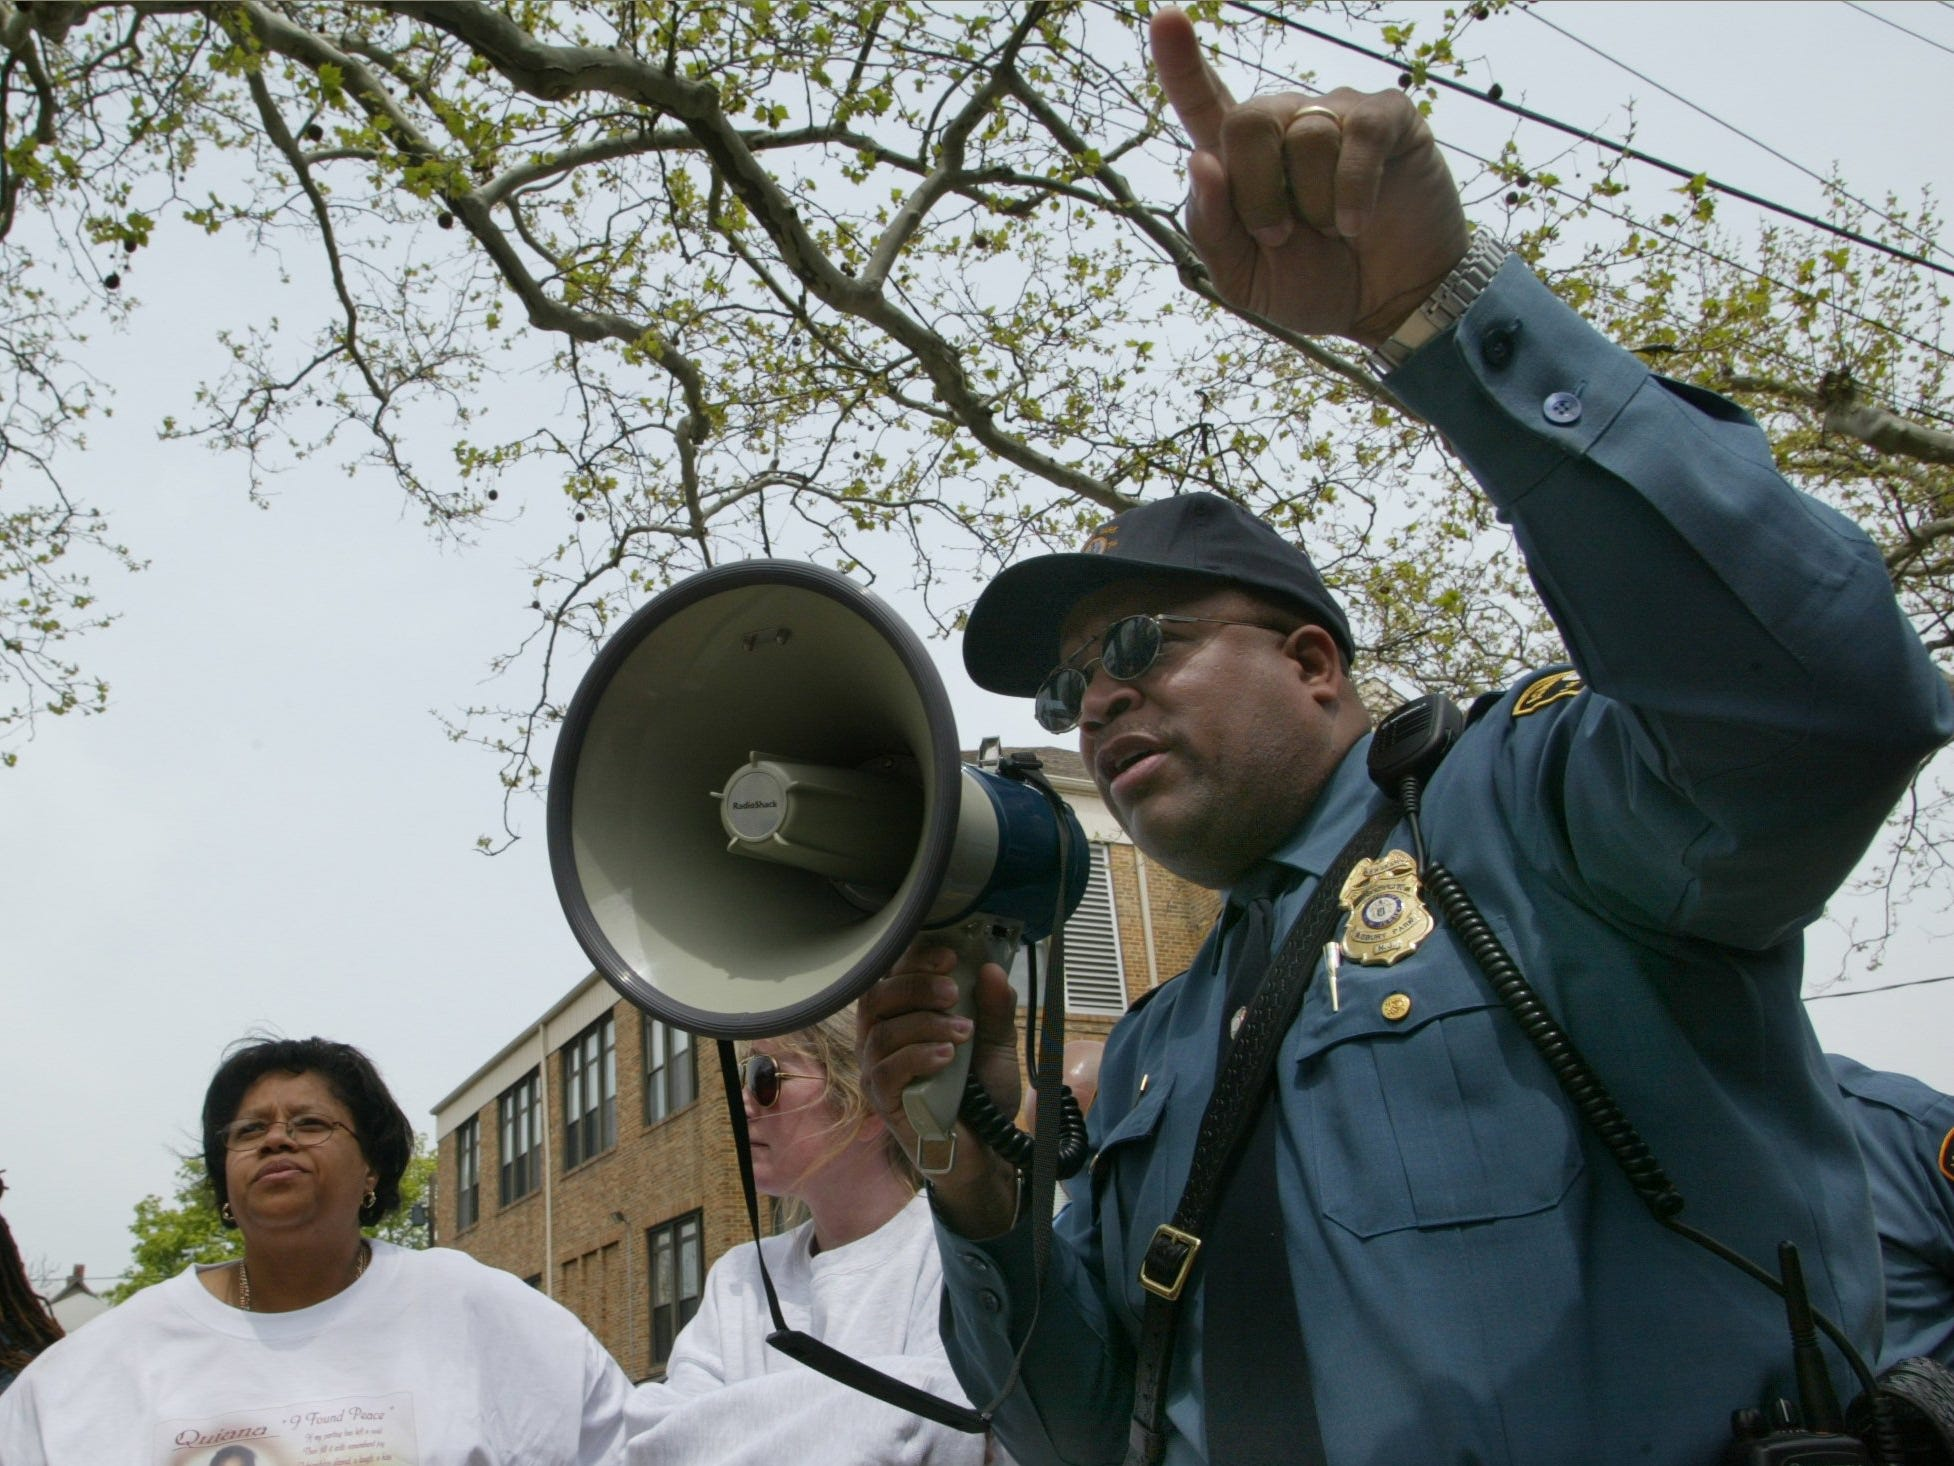 5/3/03-Asbury Park- Asbury Police Sgt. George Corbin gives instructions to crowd gathered for the 11th annual Quiana Dees March for Justice prior to start of walk in Asbury Park.